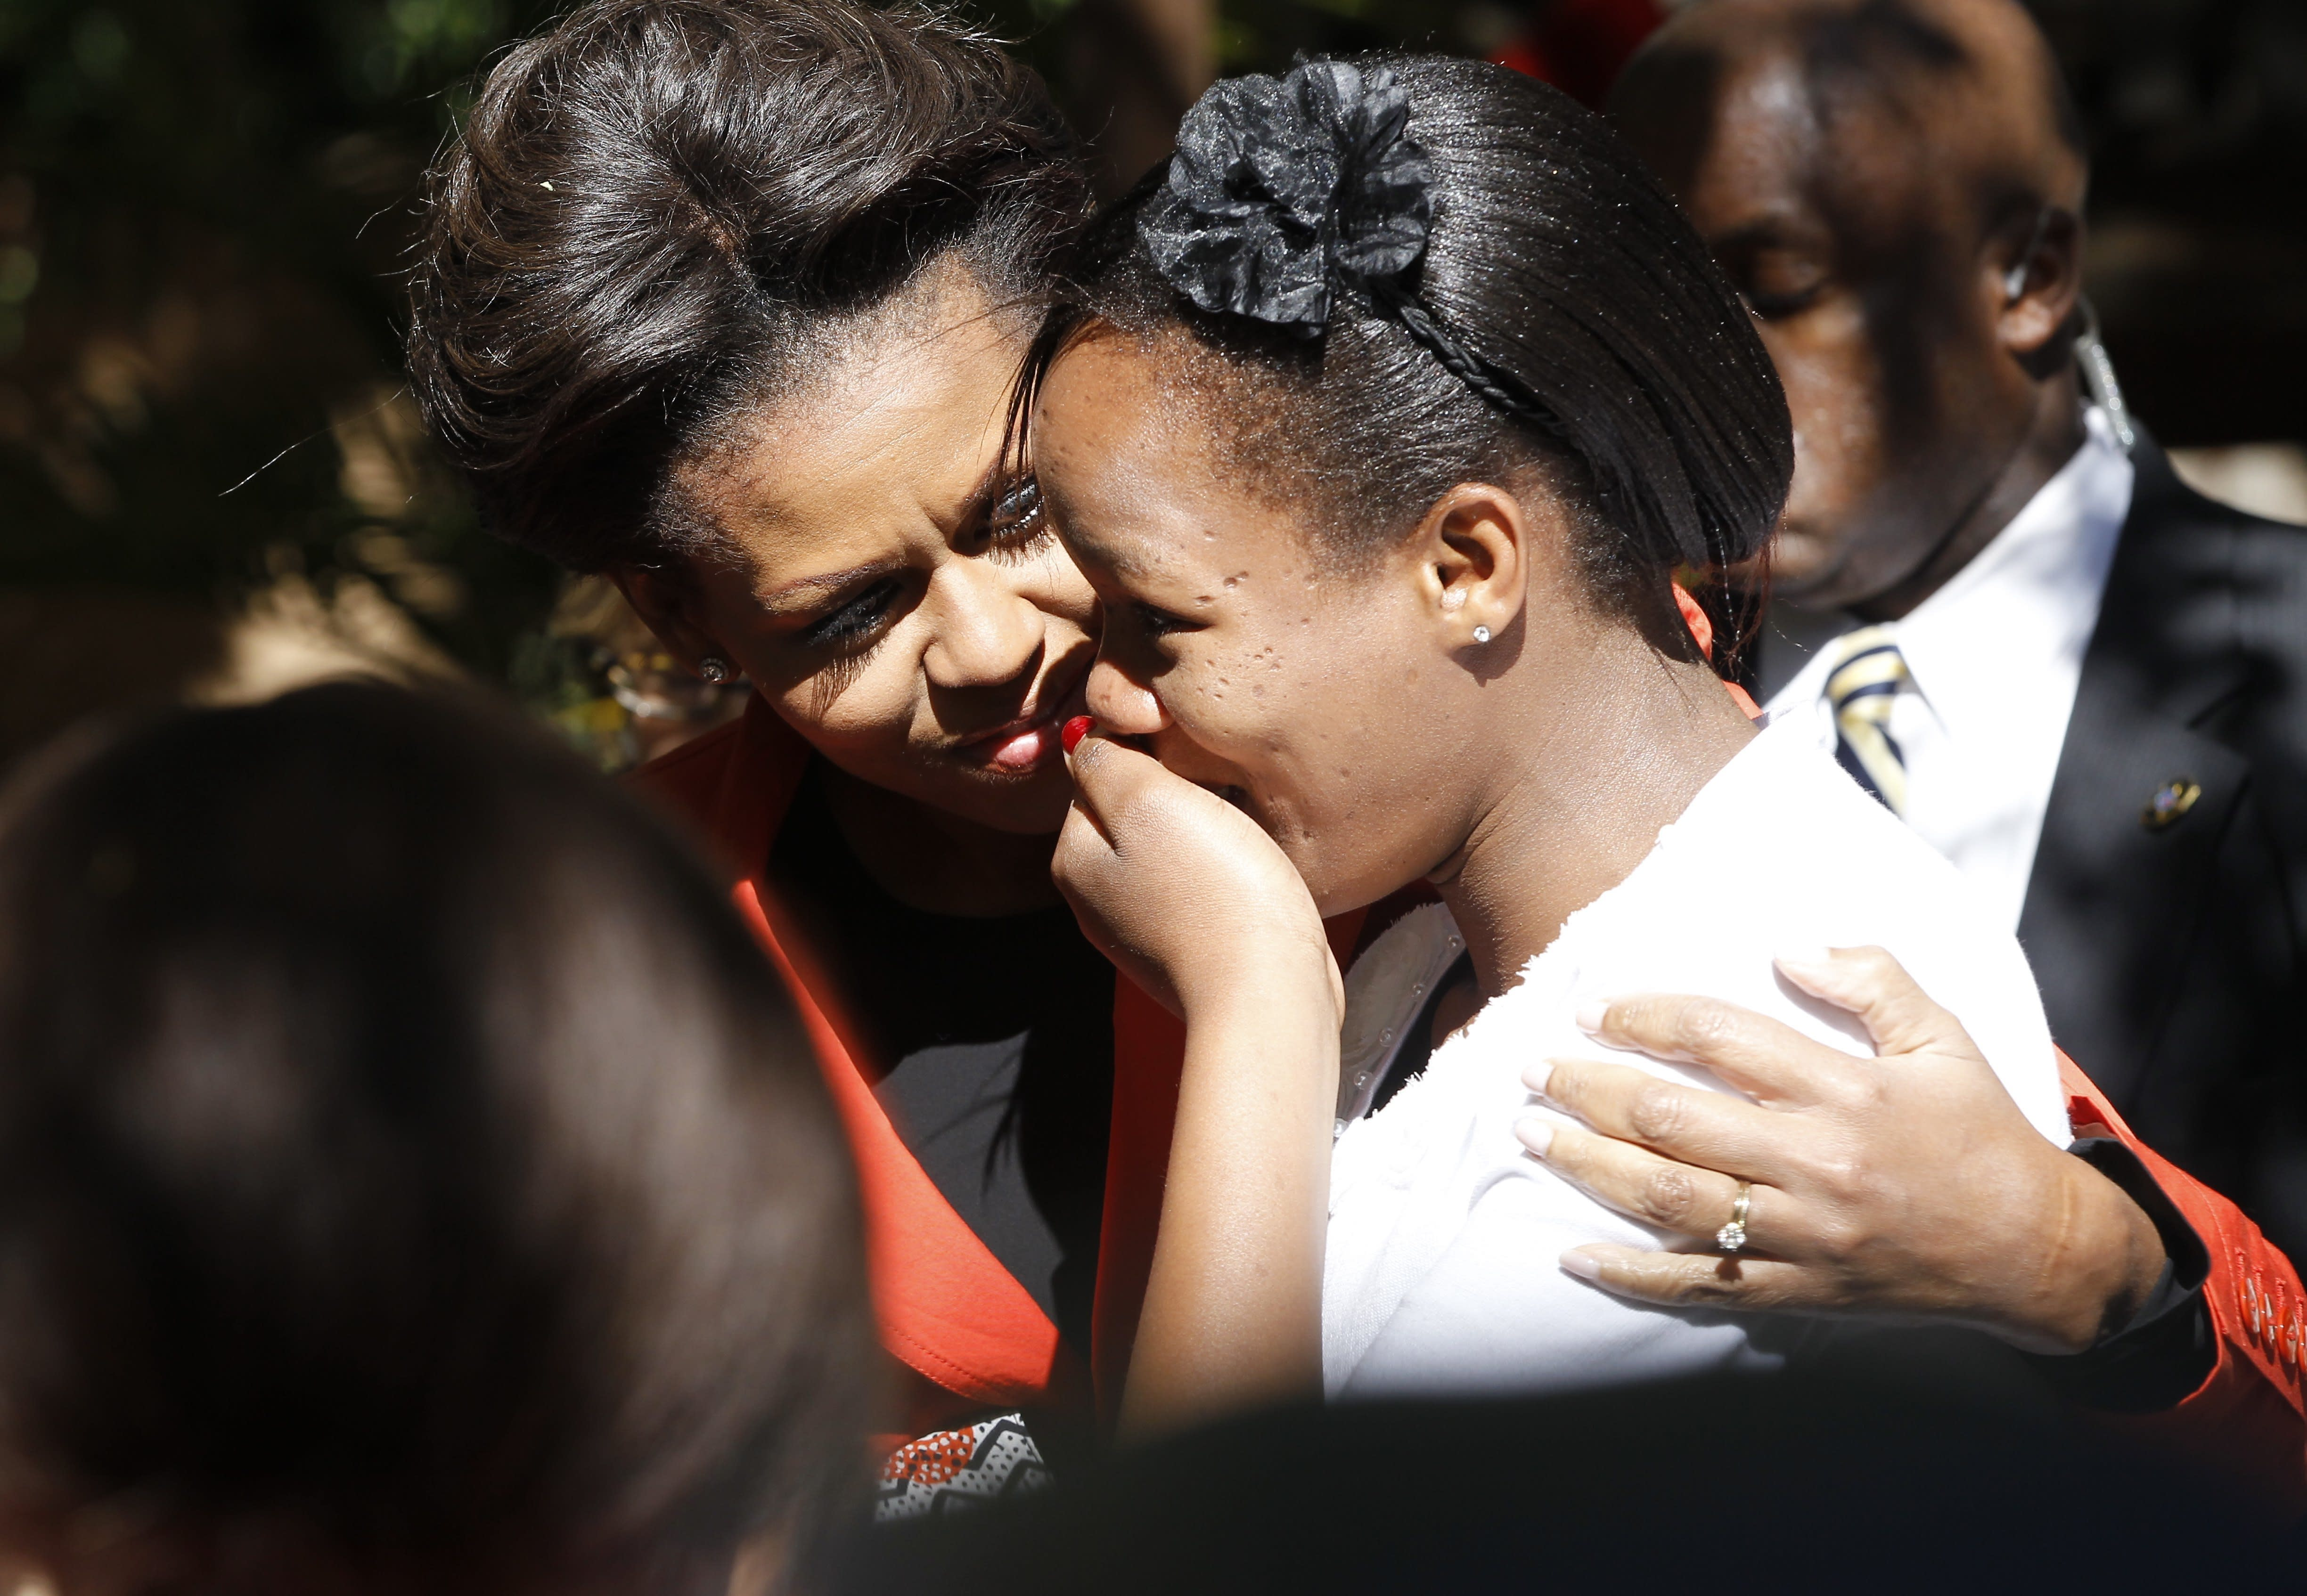 FILE - In this June 24, 2011, file photo, U.S. first lady Michelle Obama comforts a woman overcome with emotion as she greeted her at a multi-generational women leaders luncheon at the Sanitas Tea Garden in Gaborone, Botswana. When Melania Trump flies to Africa on her first extended international journey without the president, she'll be following in the footsteps of her recent predecessors. (AP Photo/Charles Dharapak, File)